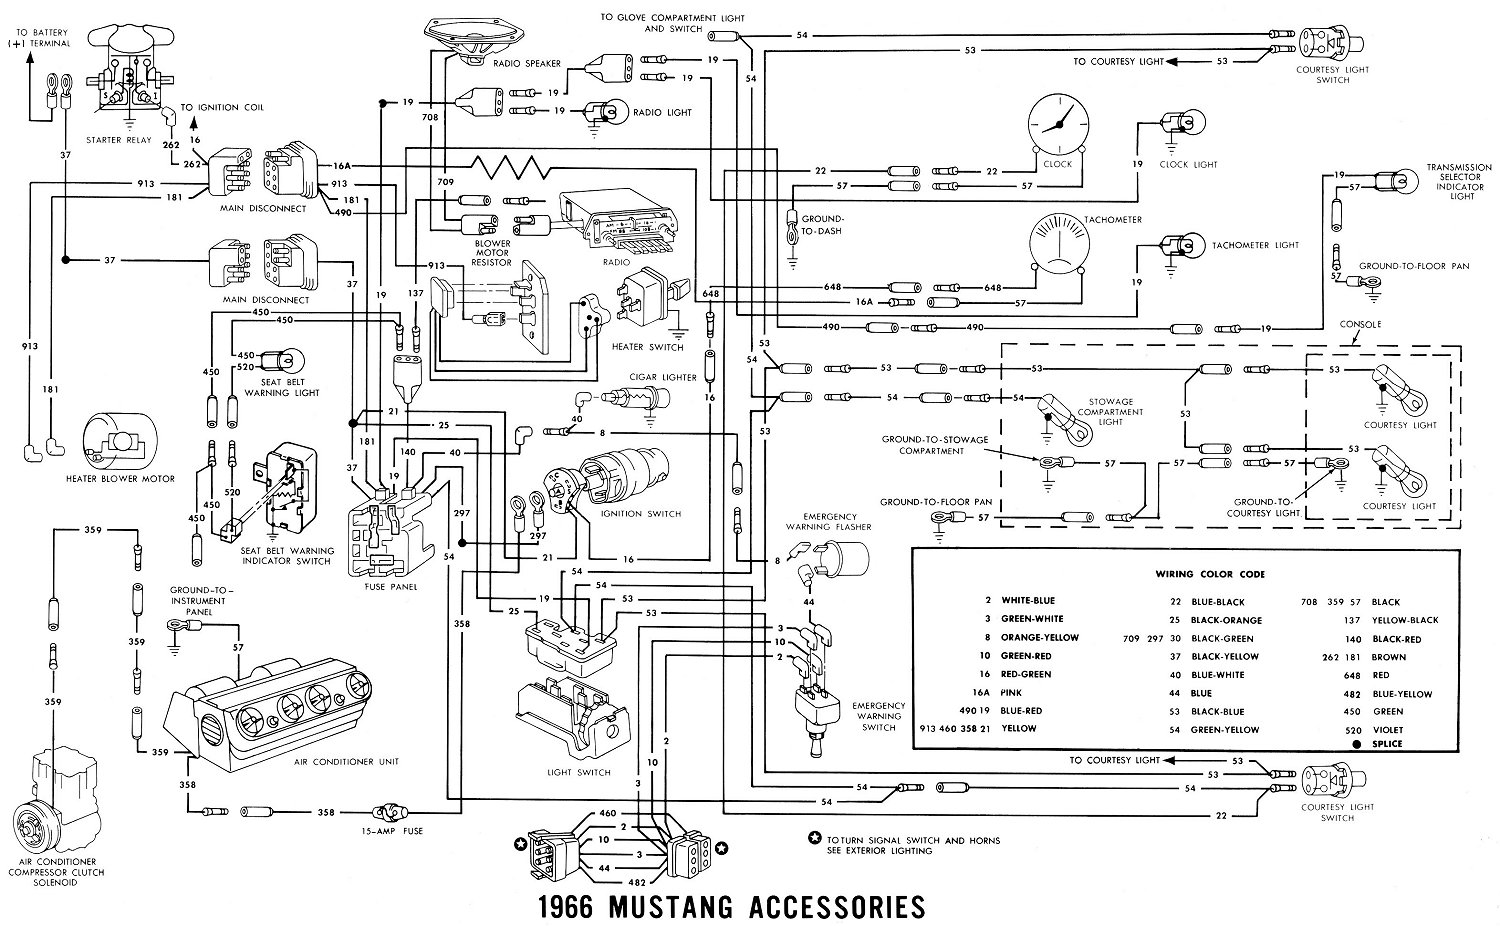 66acces1 1966 mustang wiring diagrams average joe restoration mustang wiring harness diagram at aneh.co